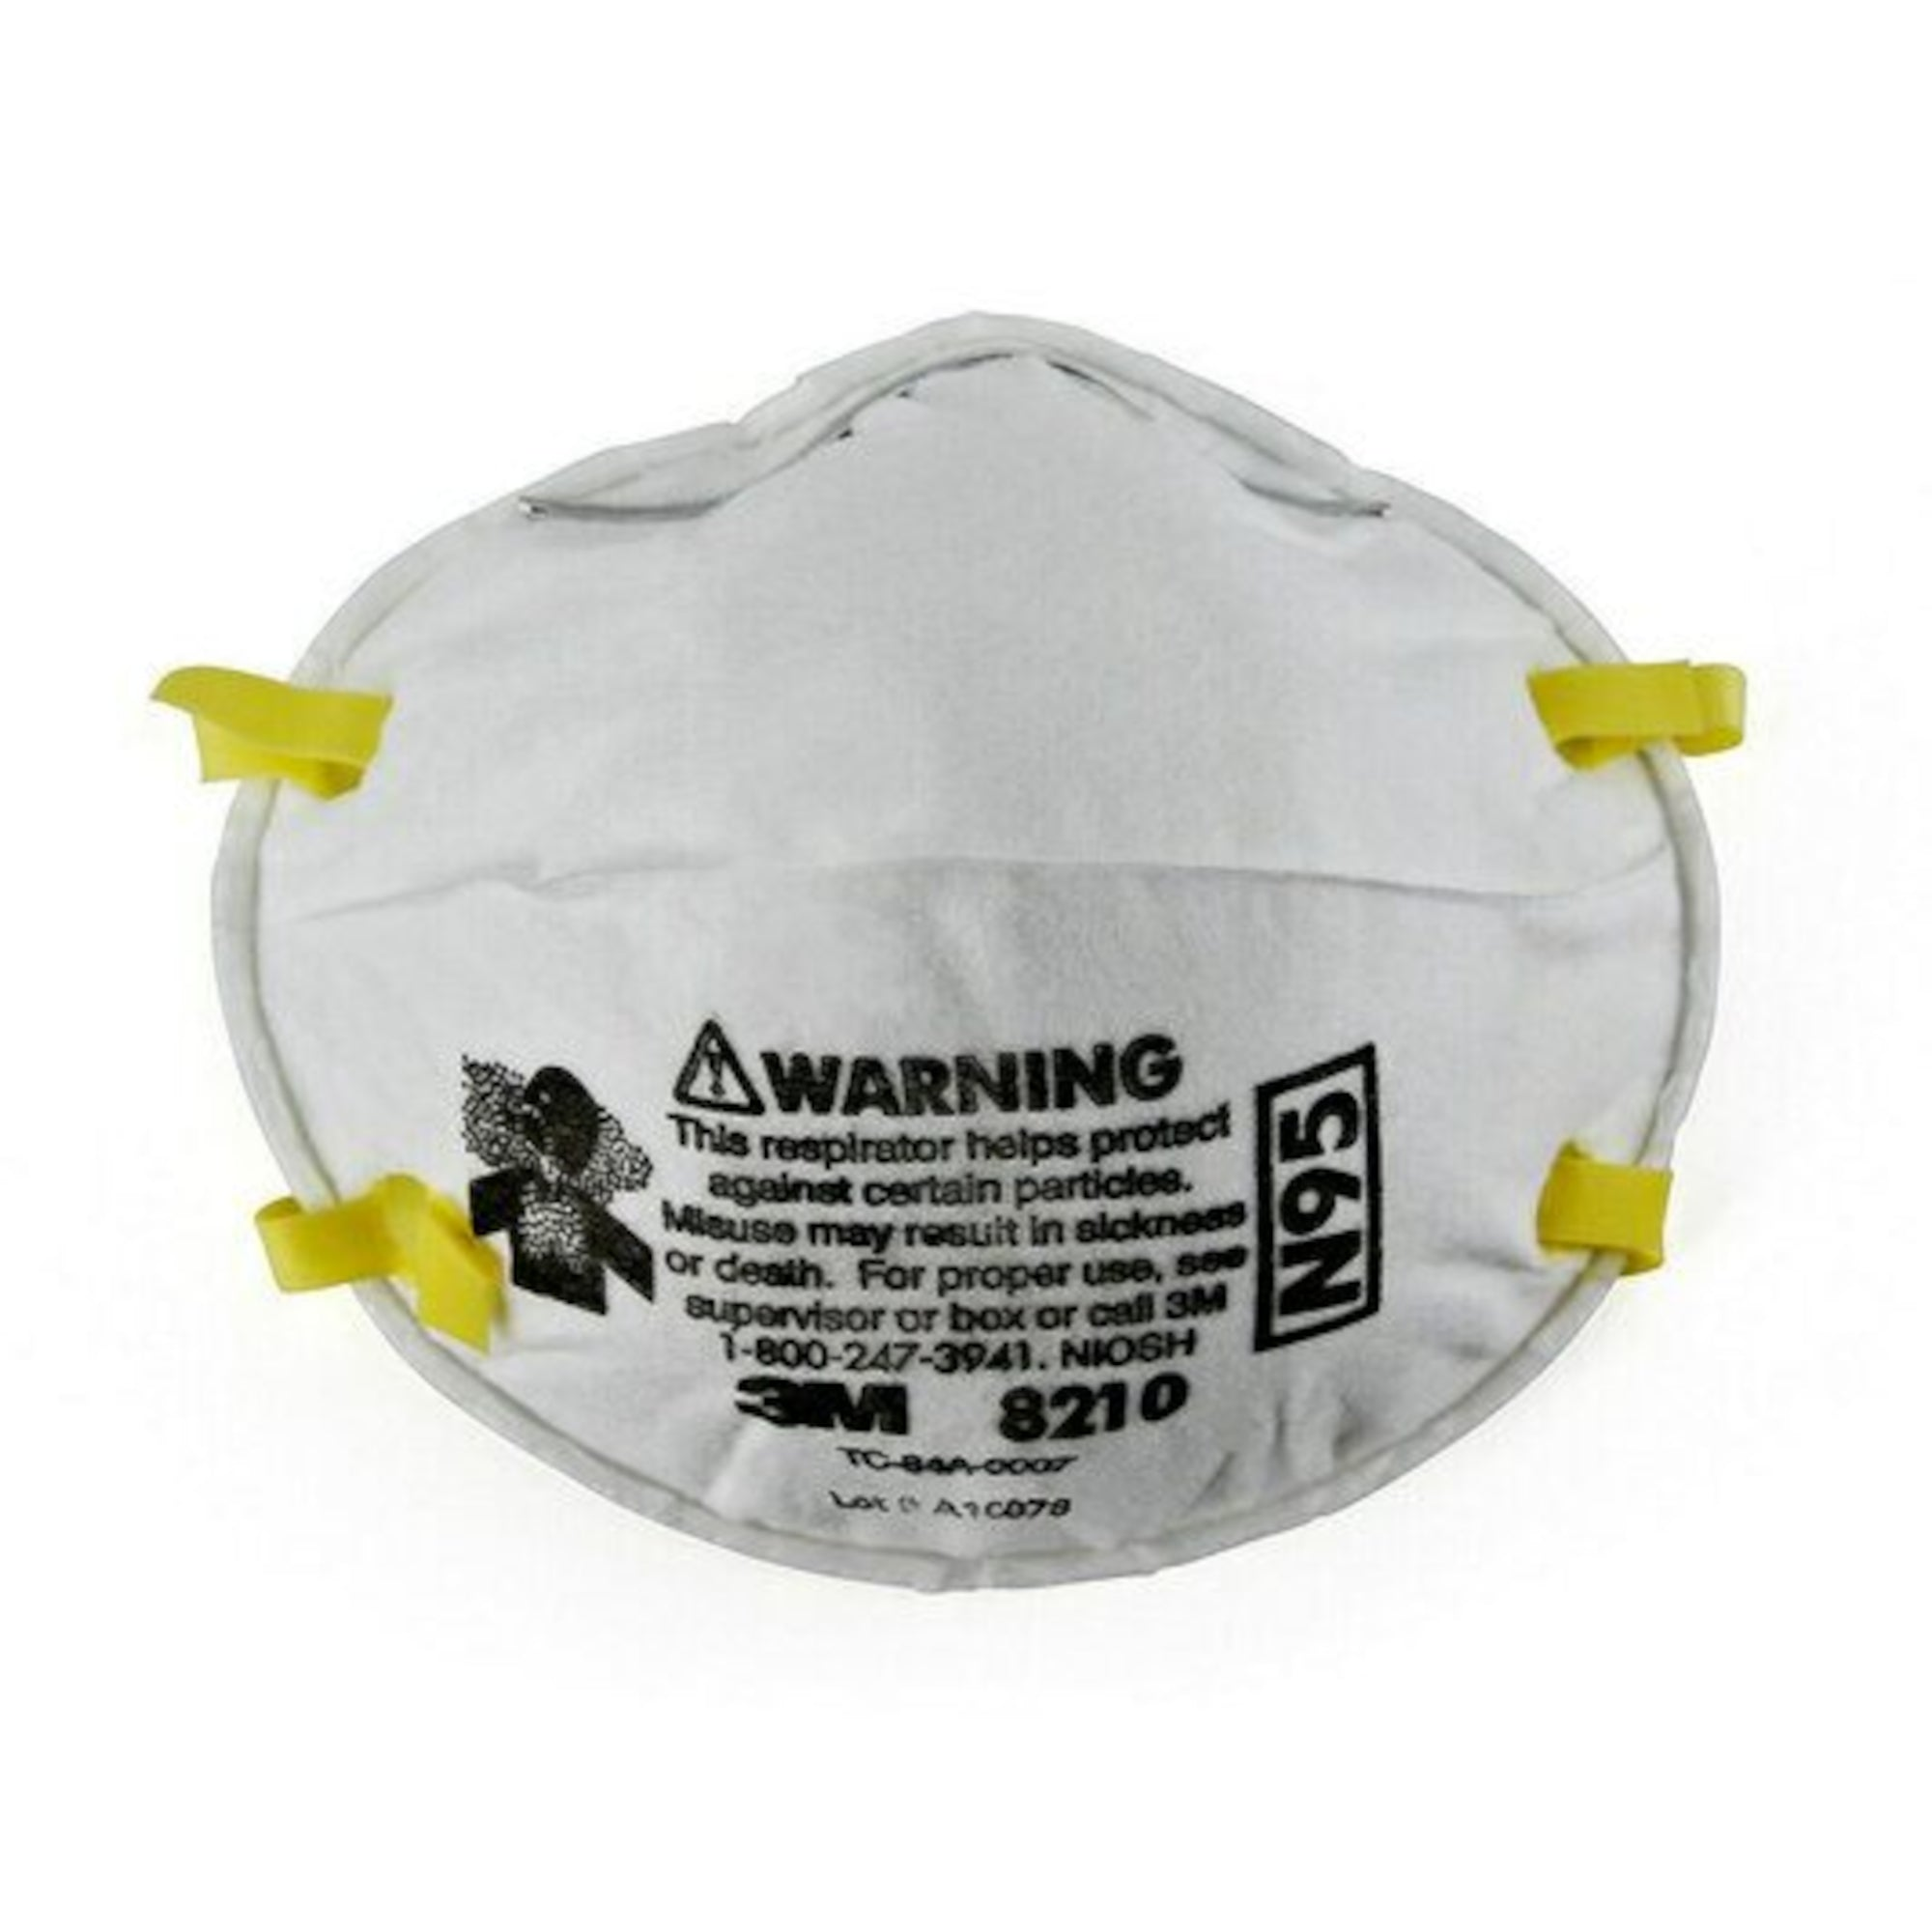 3M Particulate Respirator N95 Mask